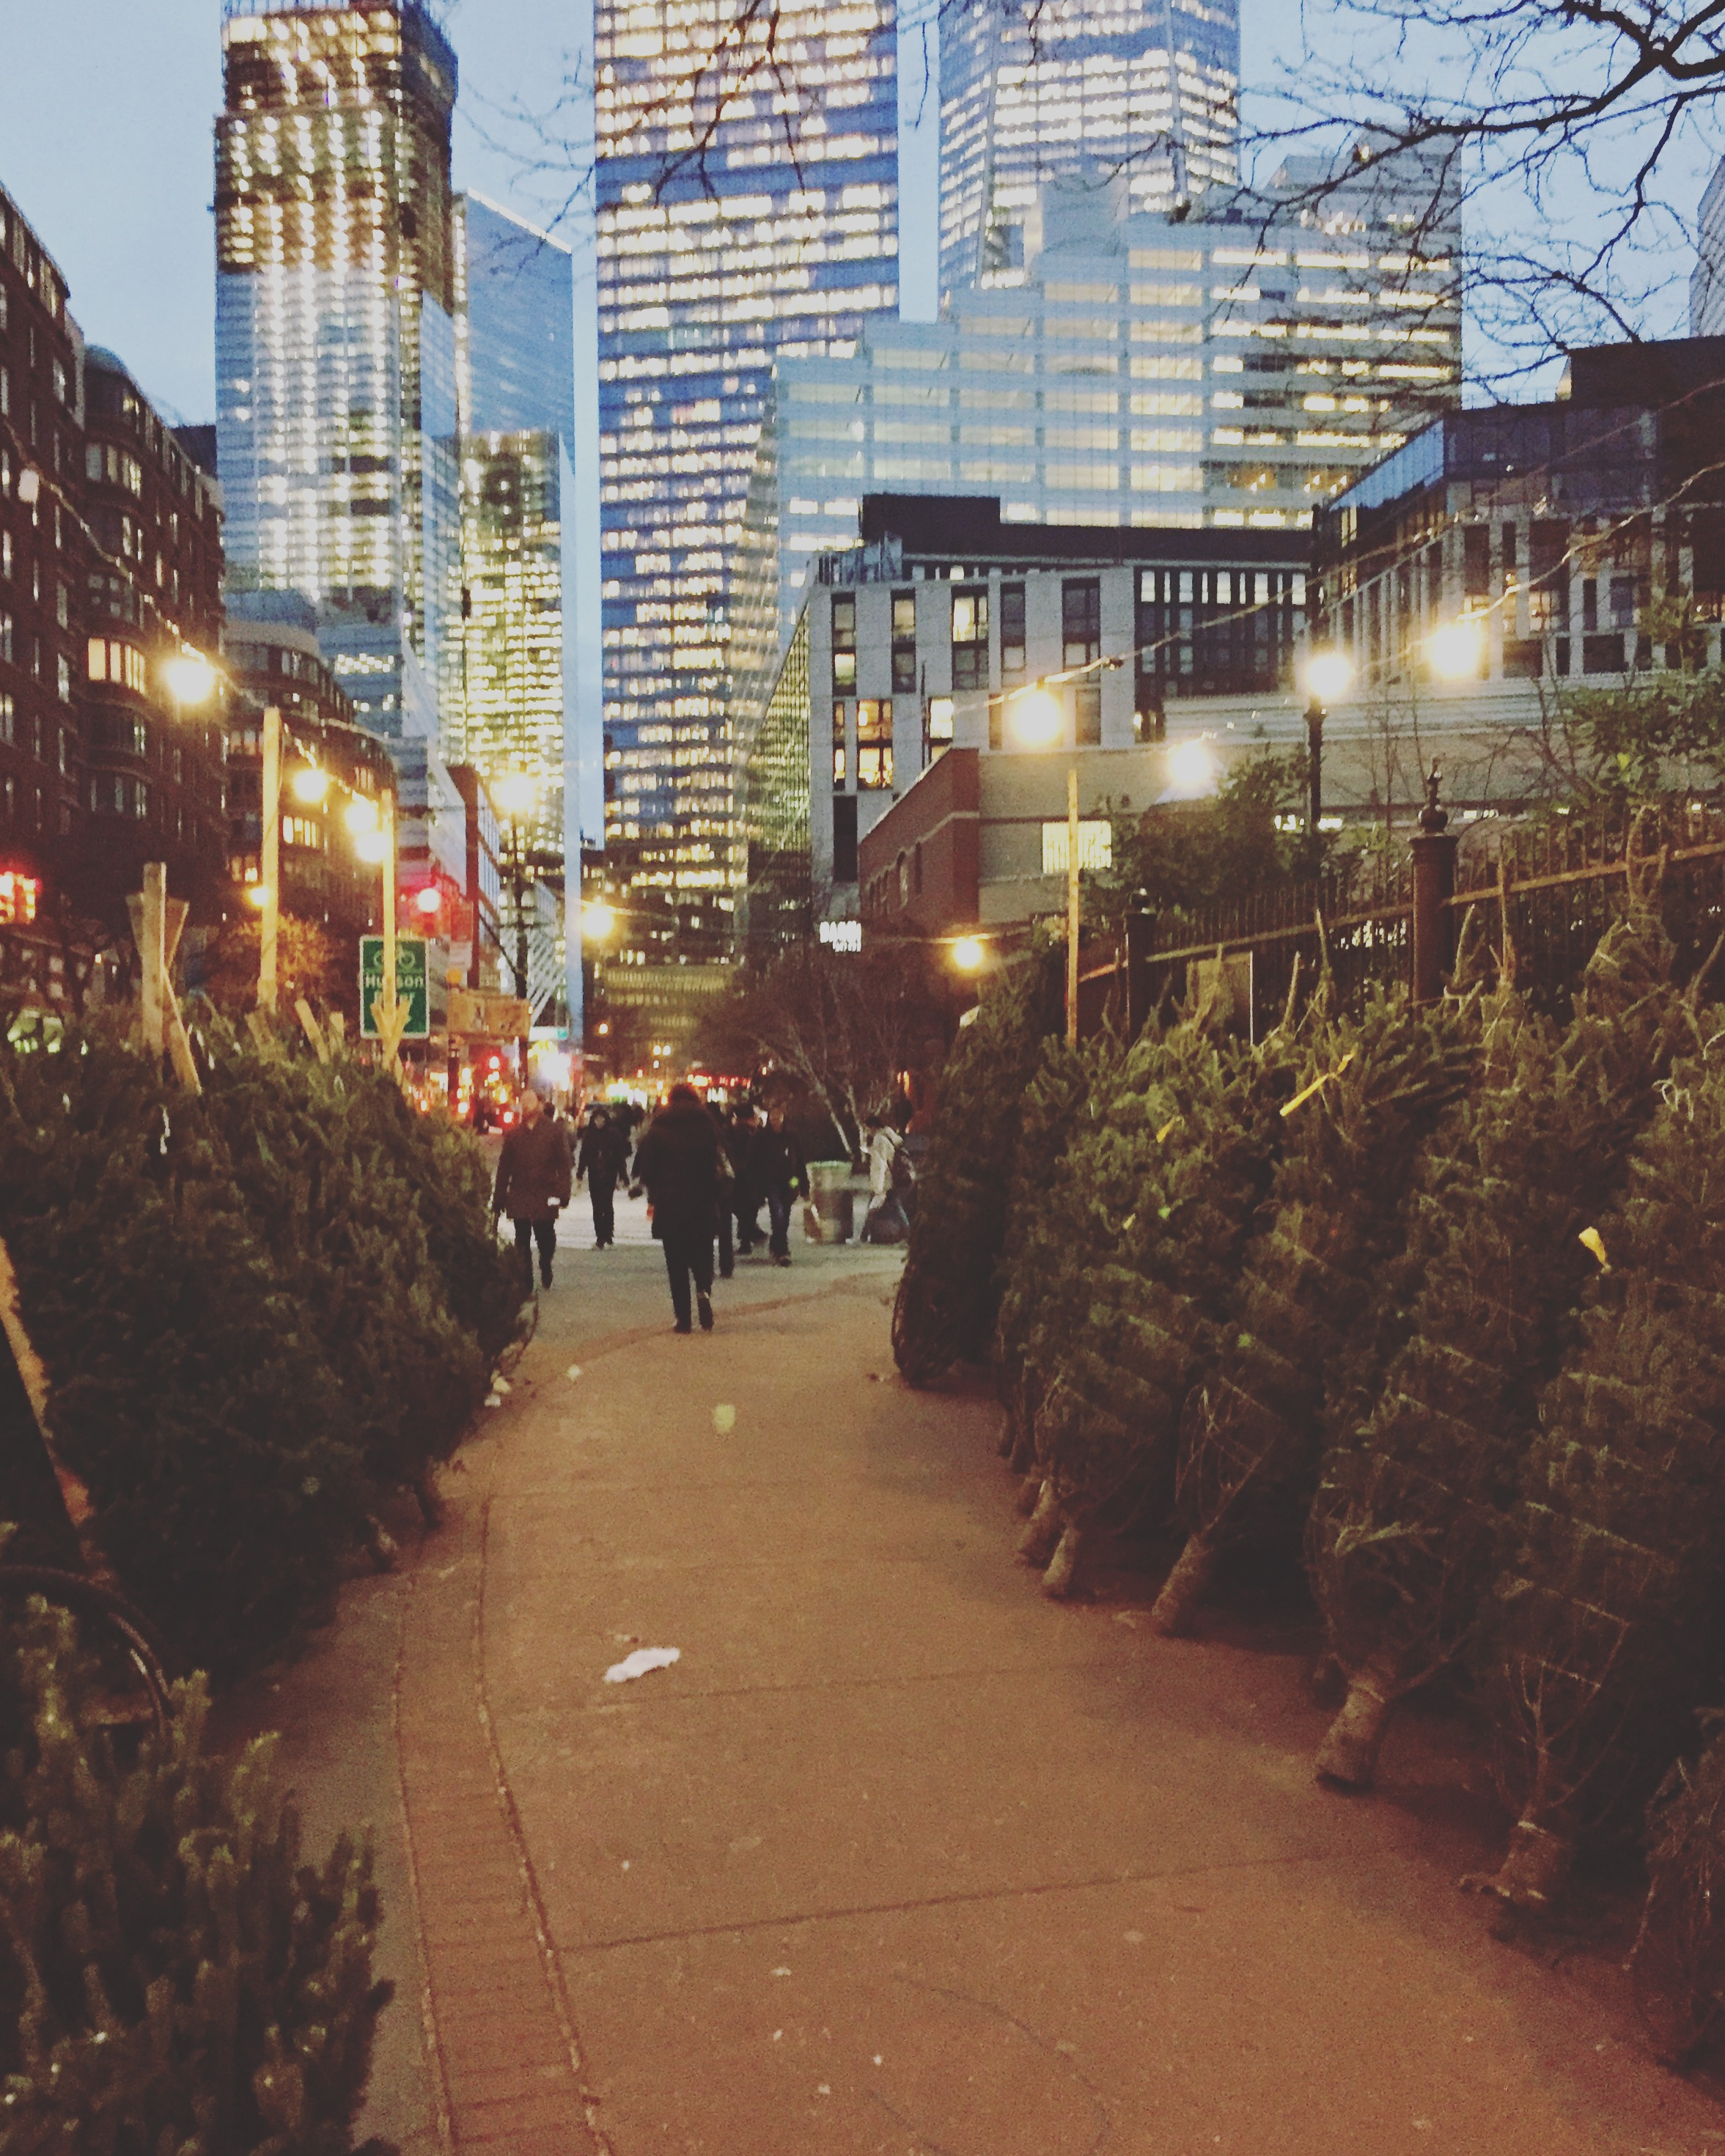 Grab a Christmas tree near SoHo. What a great view to Lower West Manhattan. If you stayed long enough, you might run into a celebrity nearby.